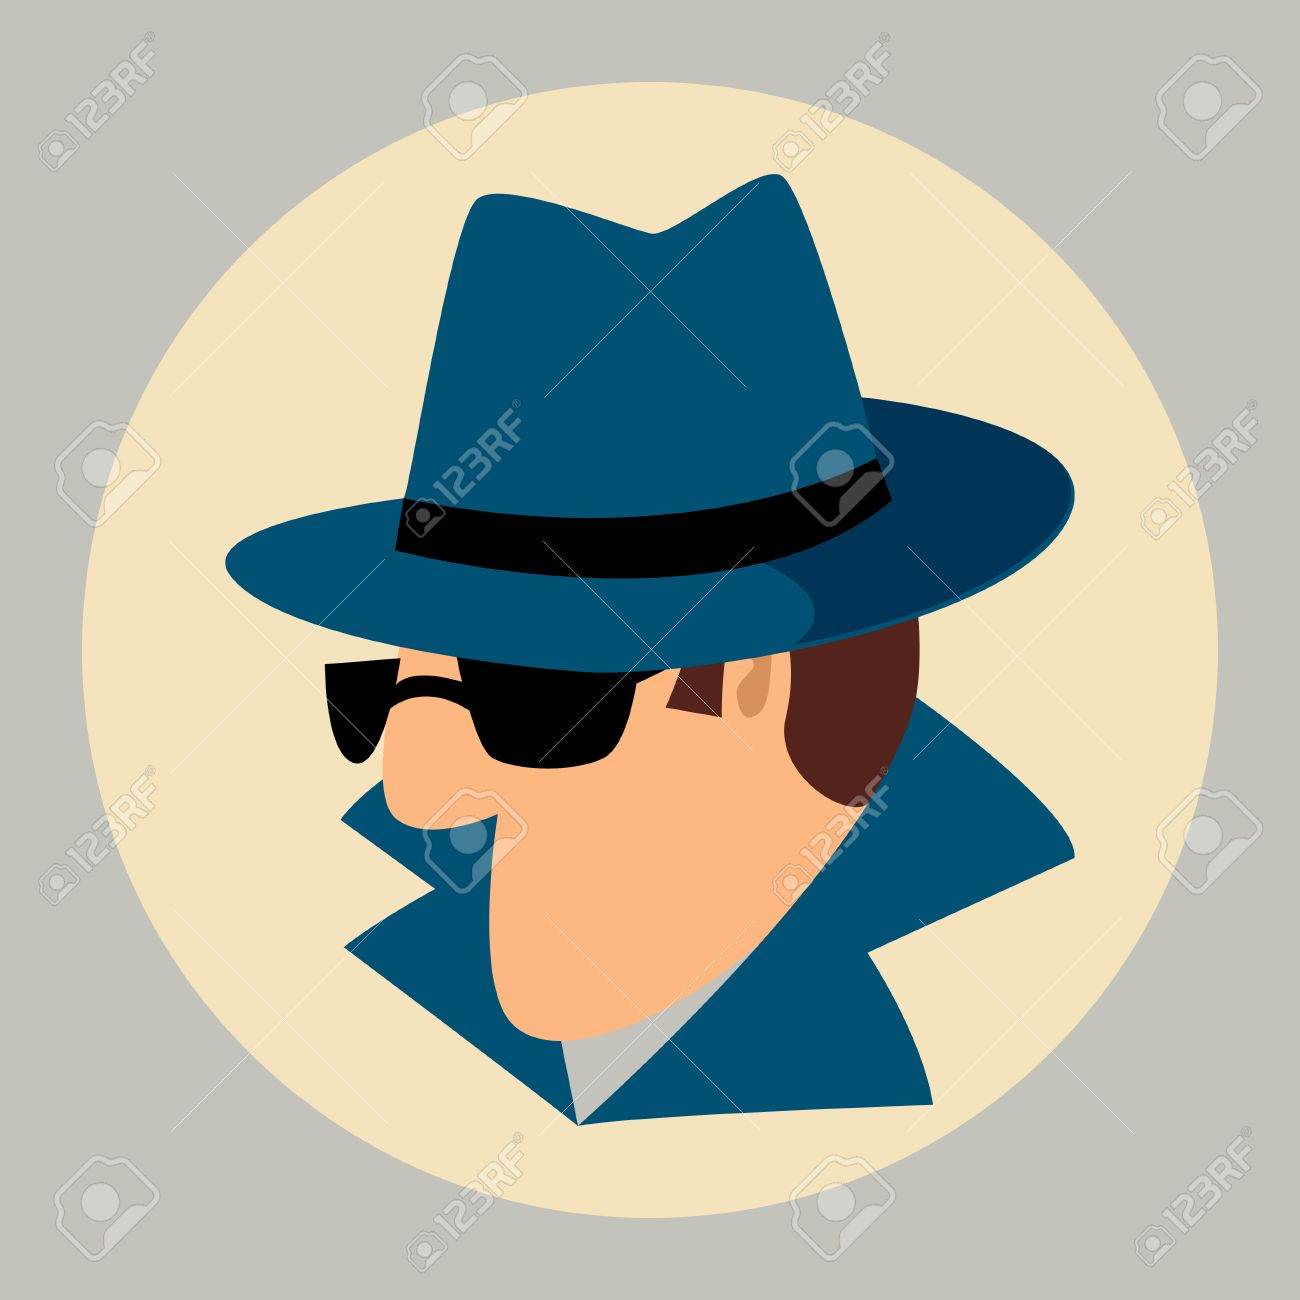 Simple Cartoon Of A Man Wearing Detective Hat And Sunglasses Royalty Free Cliparts Vectors And Stock Illustration Image 50934578 Download 3,700+ royalty free detective hat vector images. simple cartoon of a man wearing detective hat and sunglasses